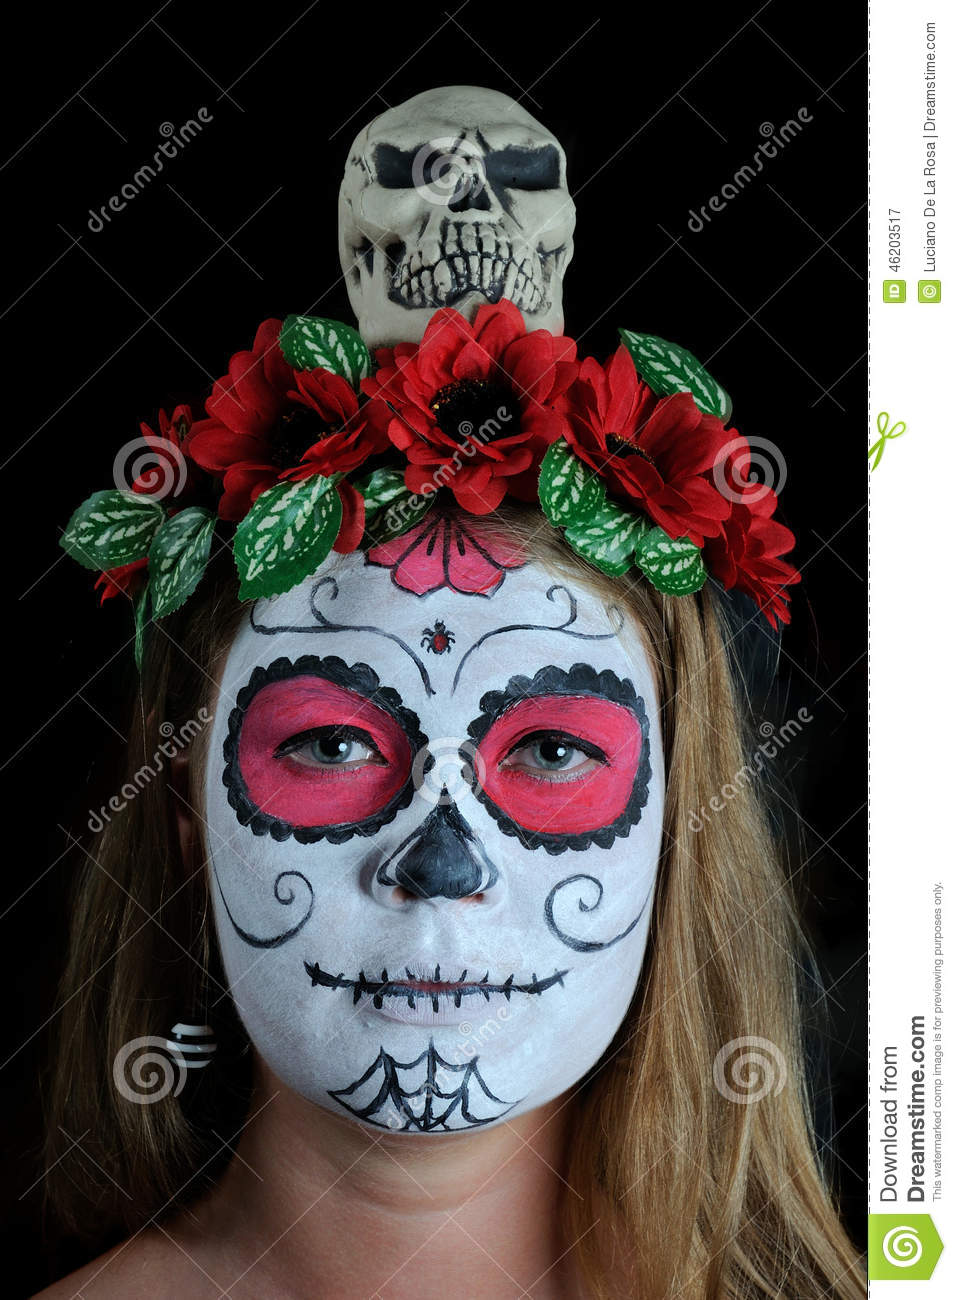 Halloween Make Up Mexican Mask Stock Image - Image of ...